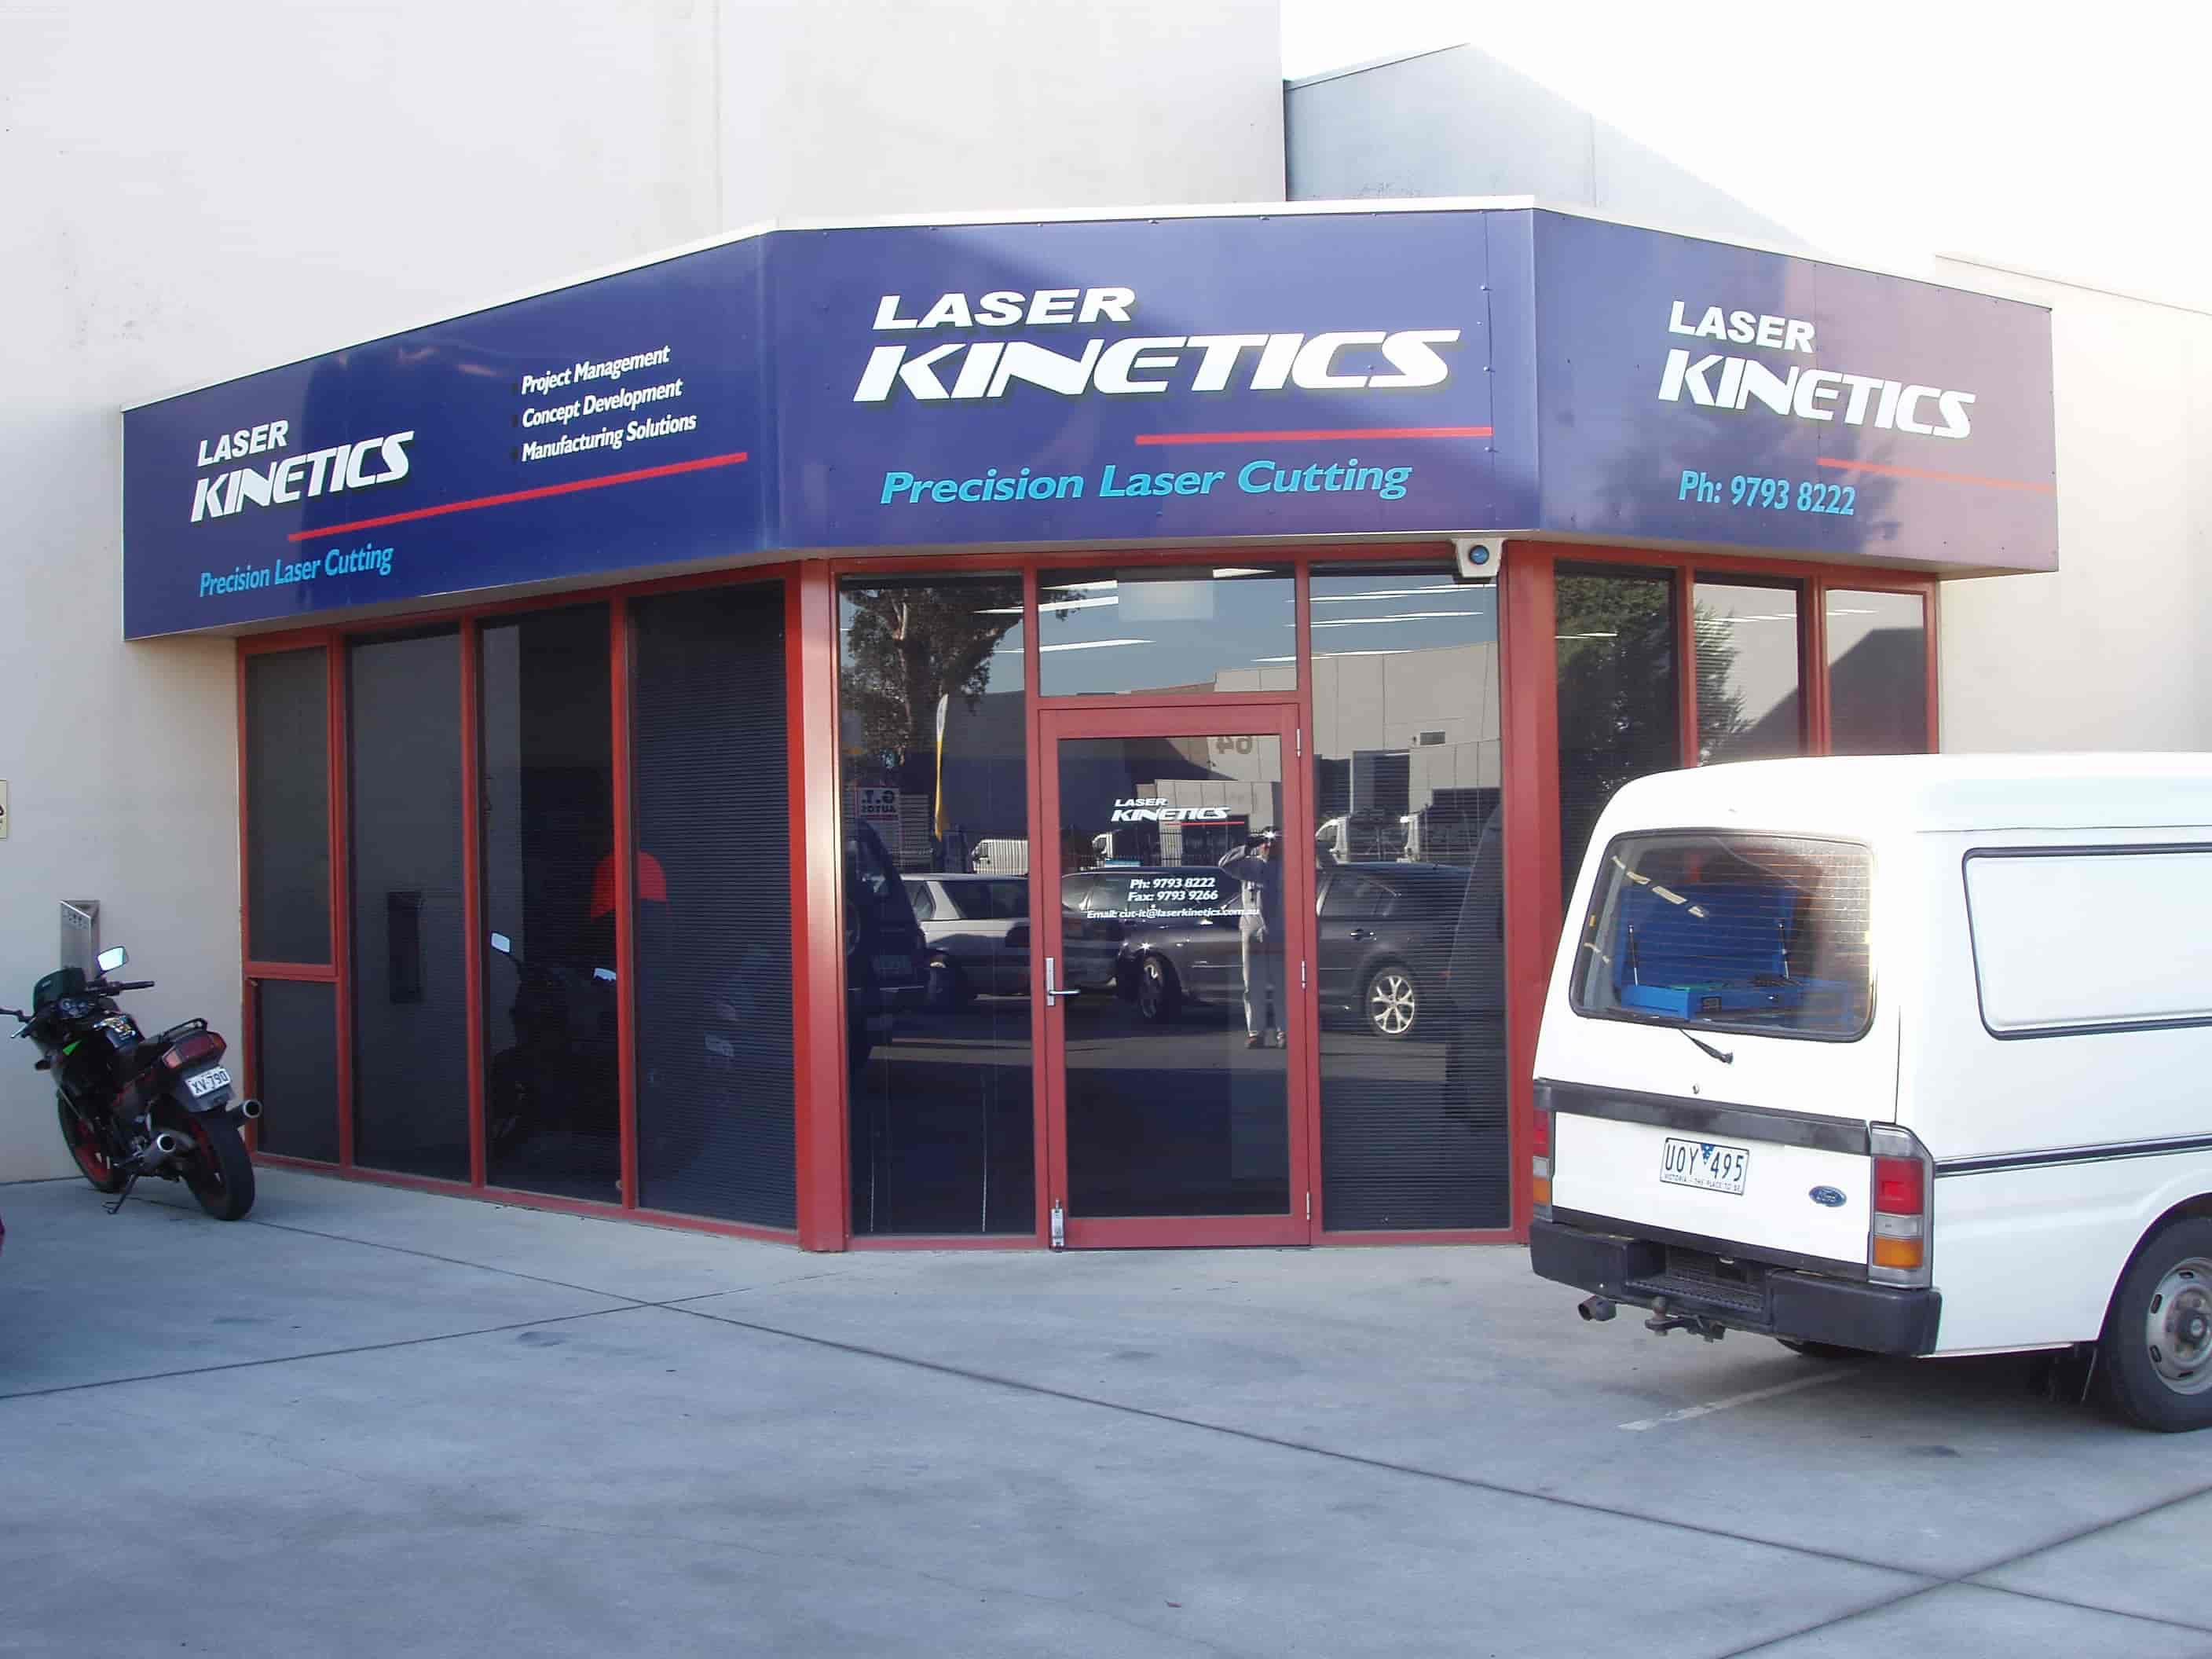 laser kinetics shop front signs